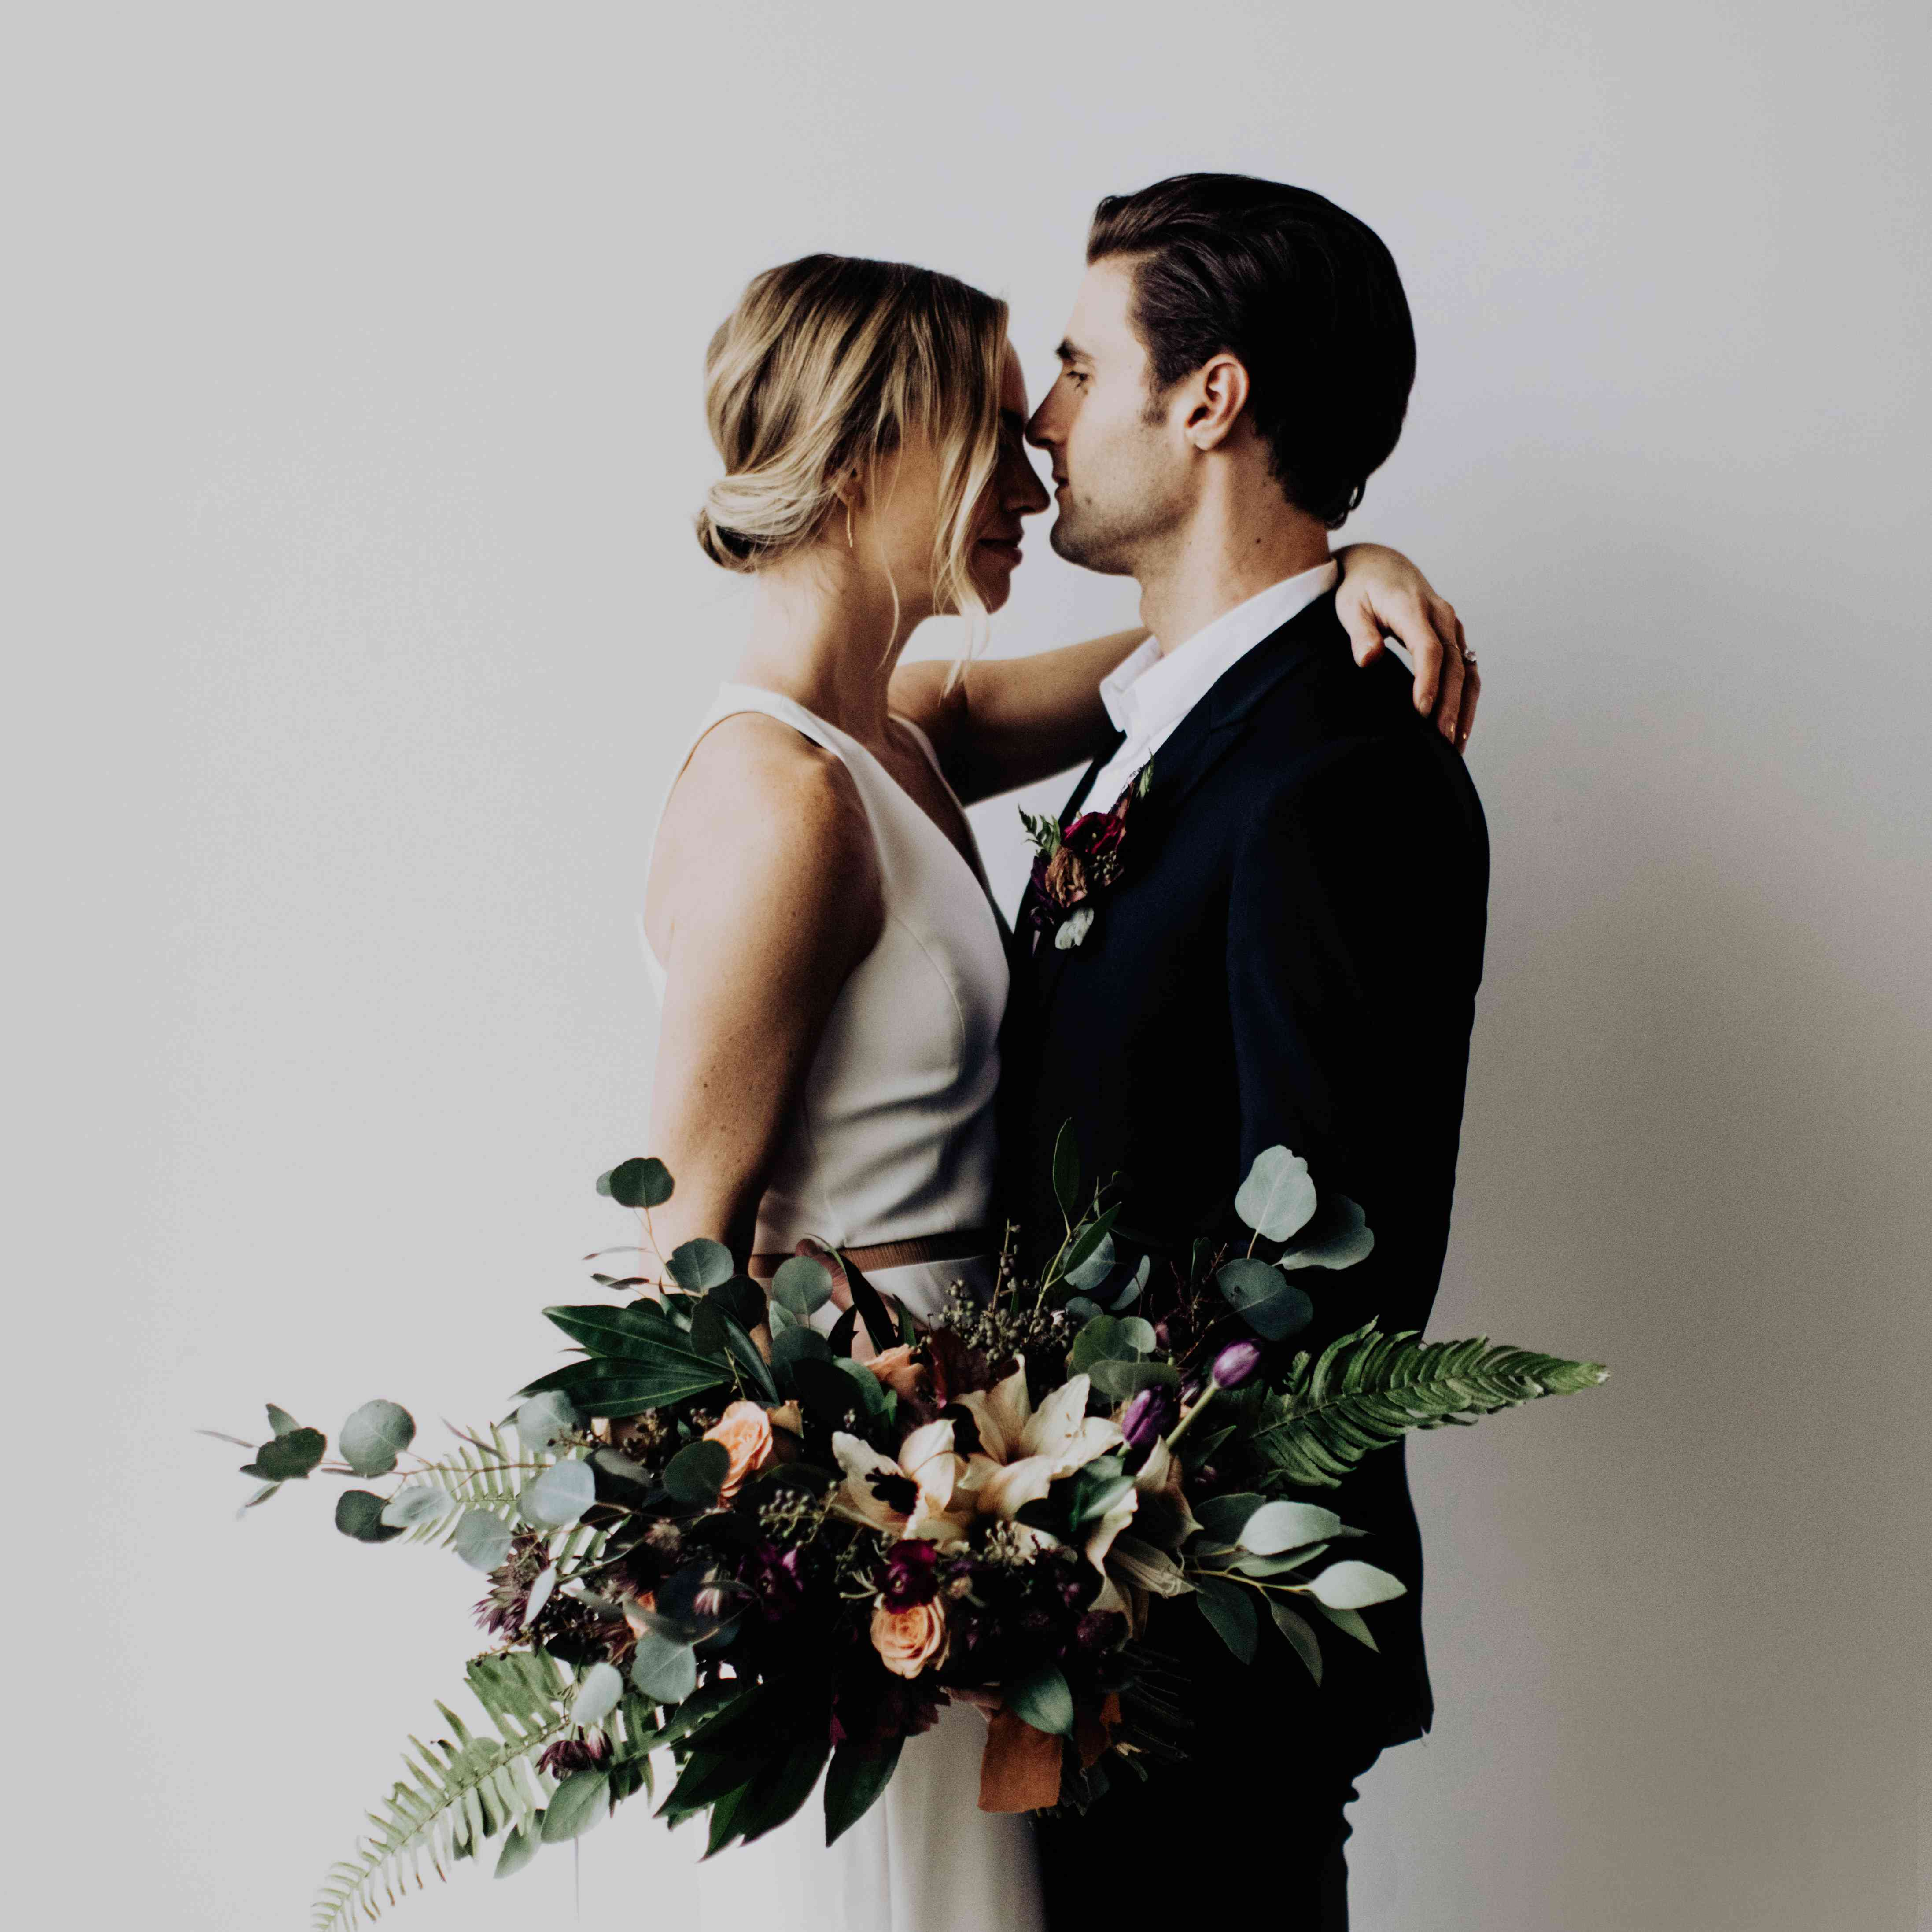 <p>bride and groom intimate</p><br><br>